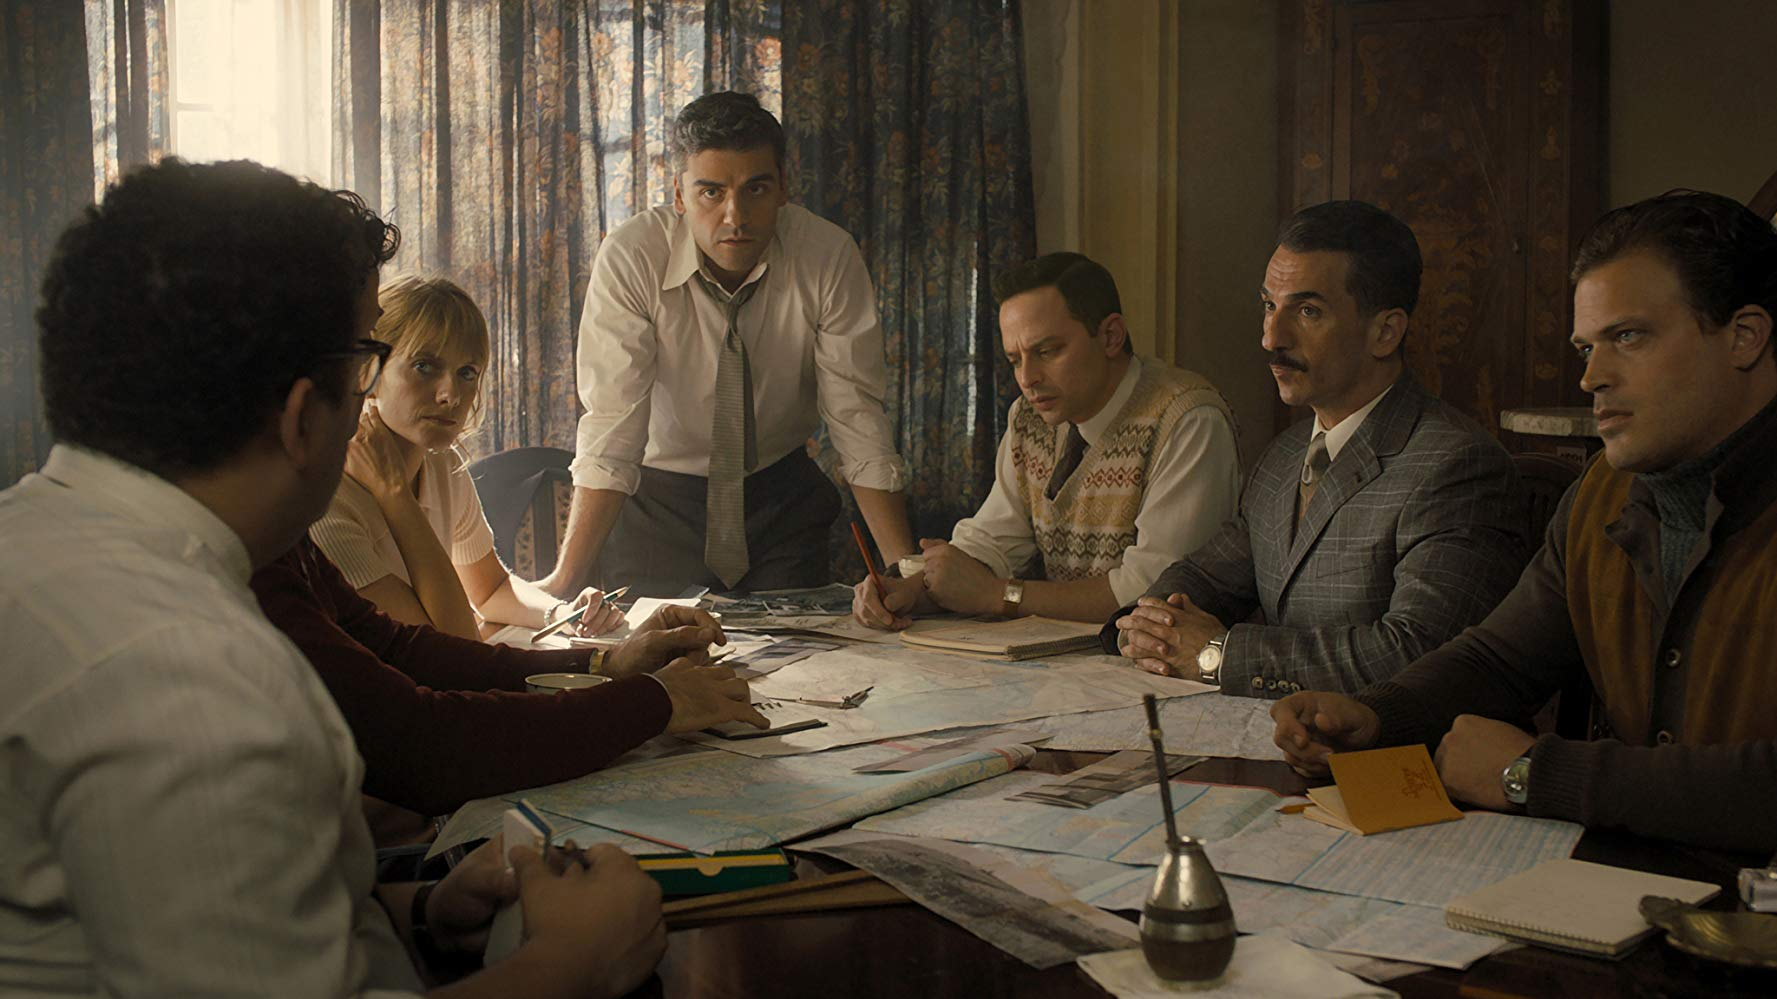 Operation Finale, movie reviews, Lucas Mirabella